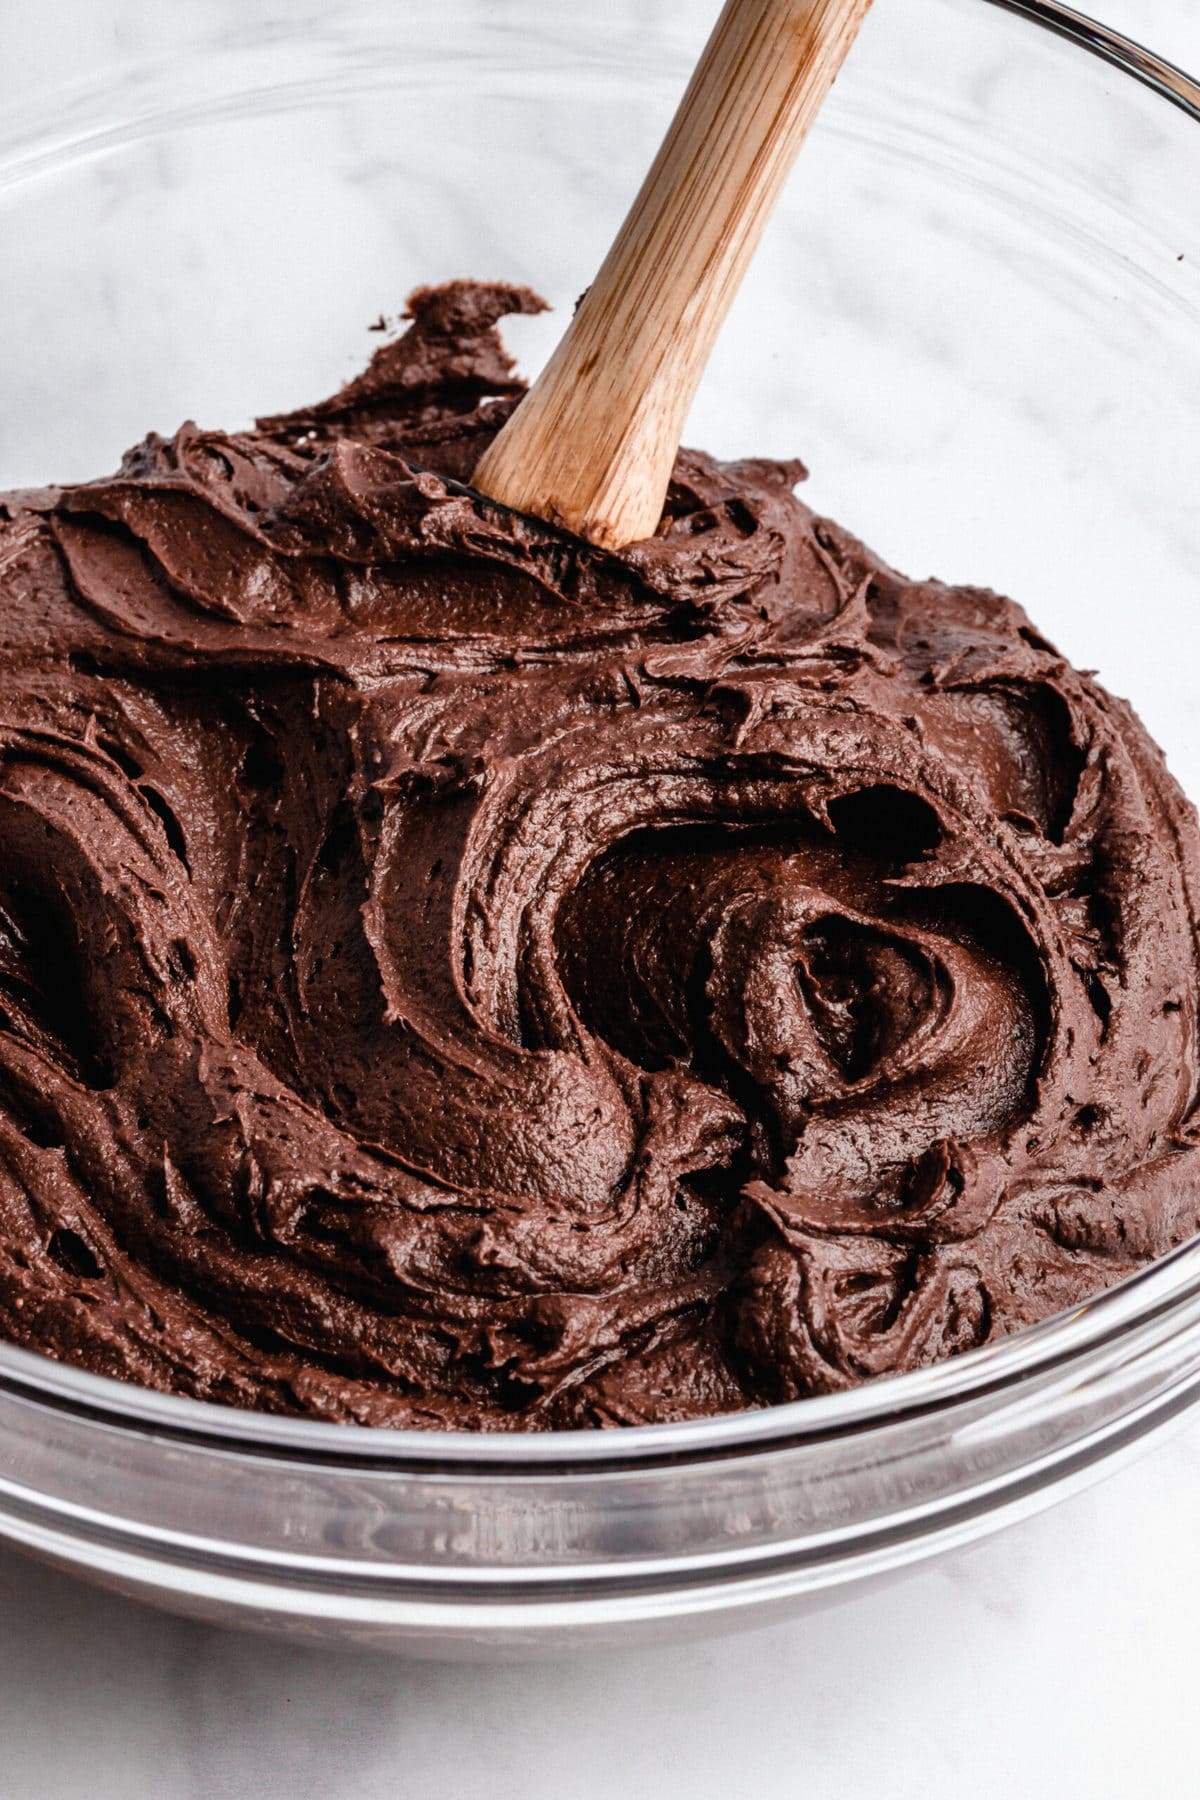 A bowl of vegan chocolate frosting with a spatula in it.